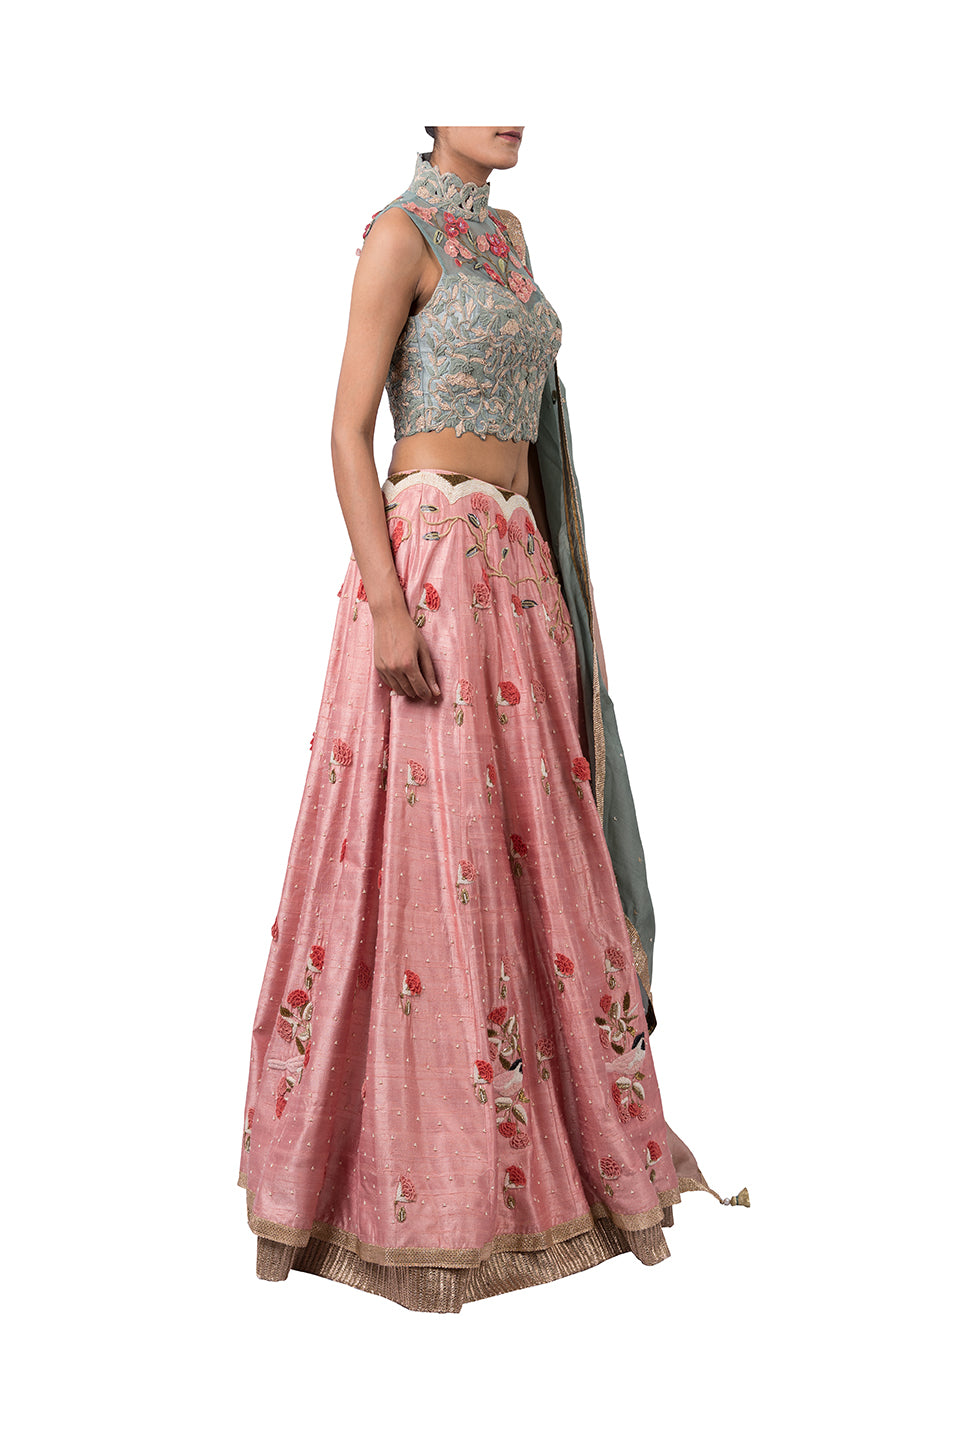 DORI HIGH NECK BLOUSE WITH 3D FLOWERS AND HEM BIRD LEHENGA